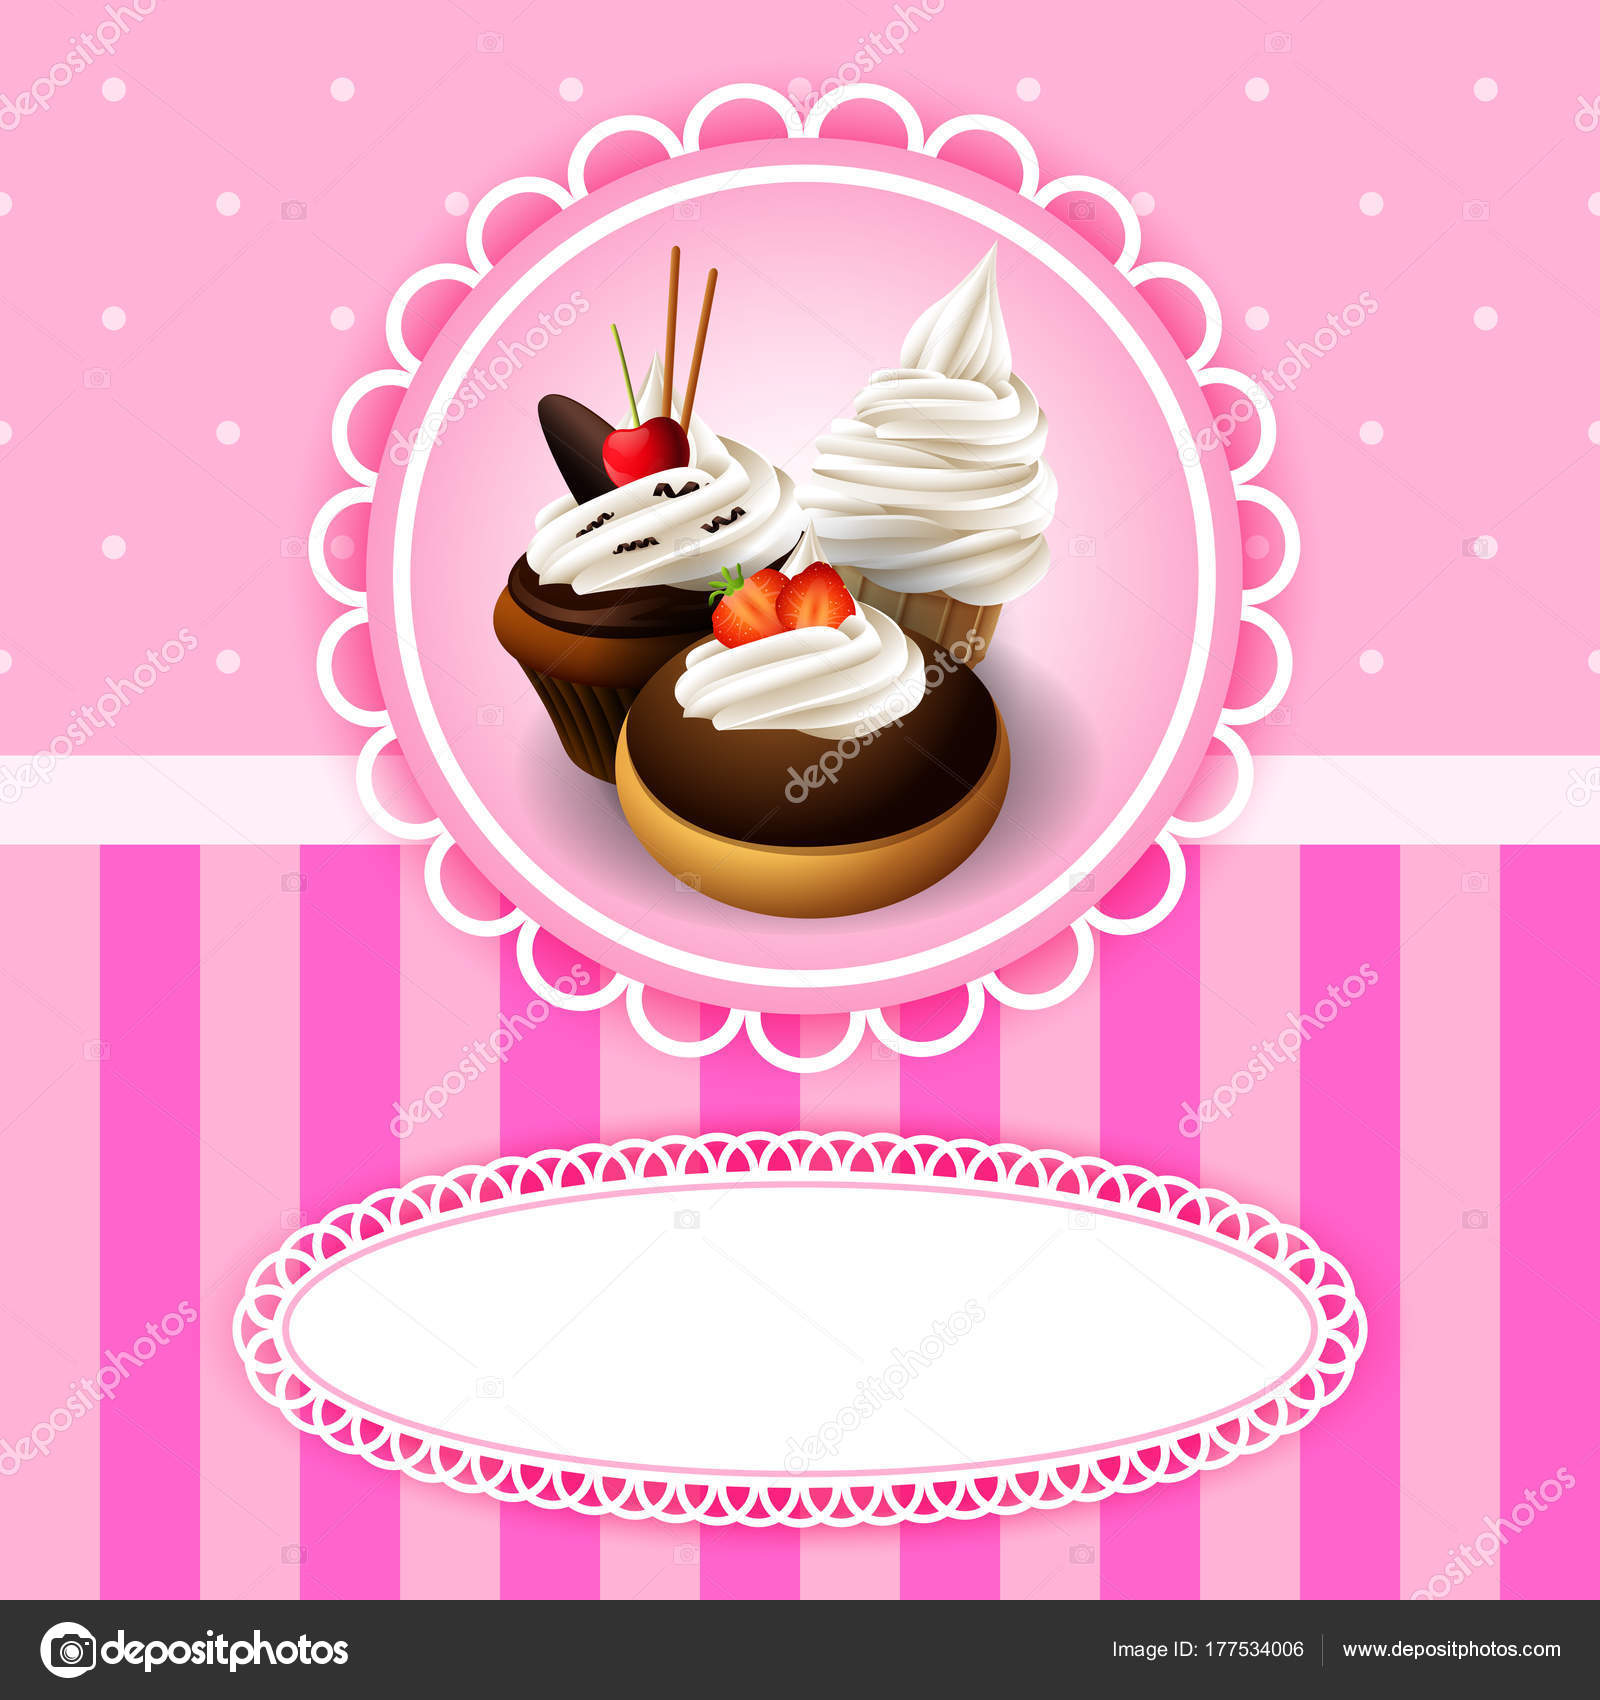 vintage background cupcake stock vector c dreamcreation01 177534006 https depositphotos com 177534006 stock illustration vintage background cupcake html